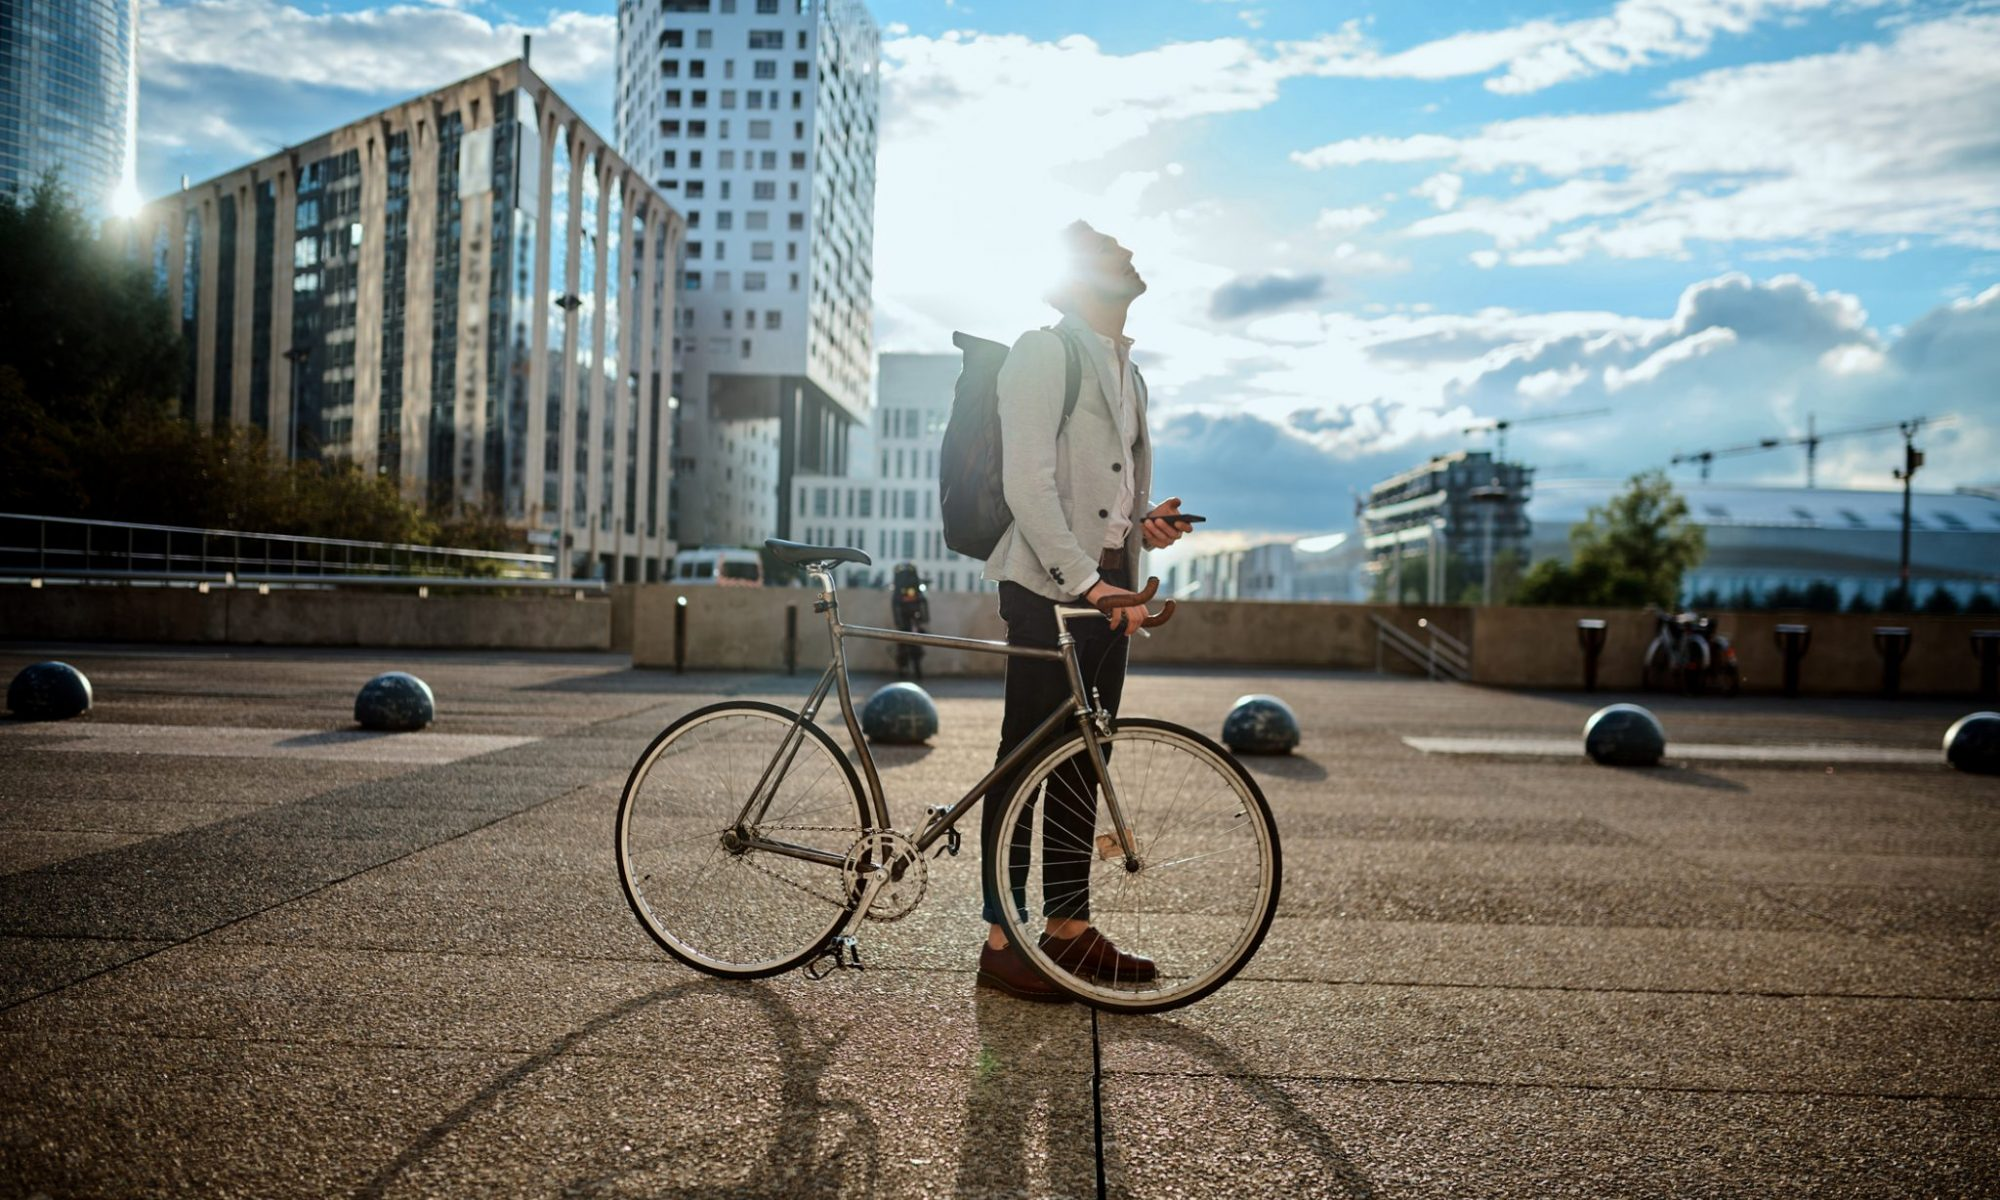 A student is looking into the bright blue sunny sky with a backpack on his shoulders, holding a mobile in one hand and resting the other on a bike. The student is in the city with high glassed buildings.